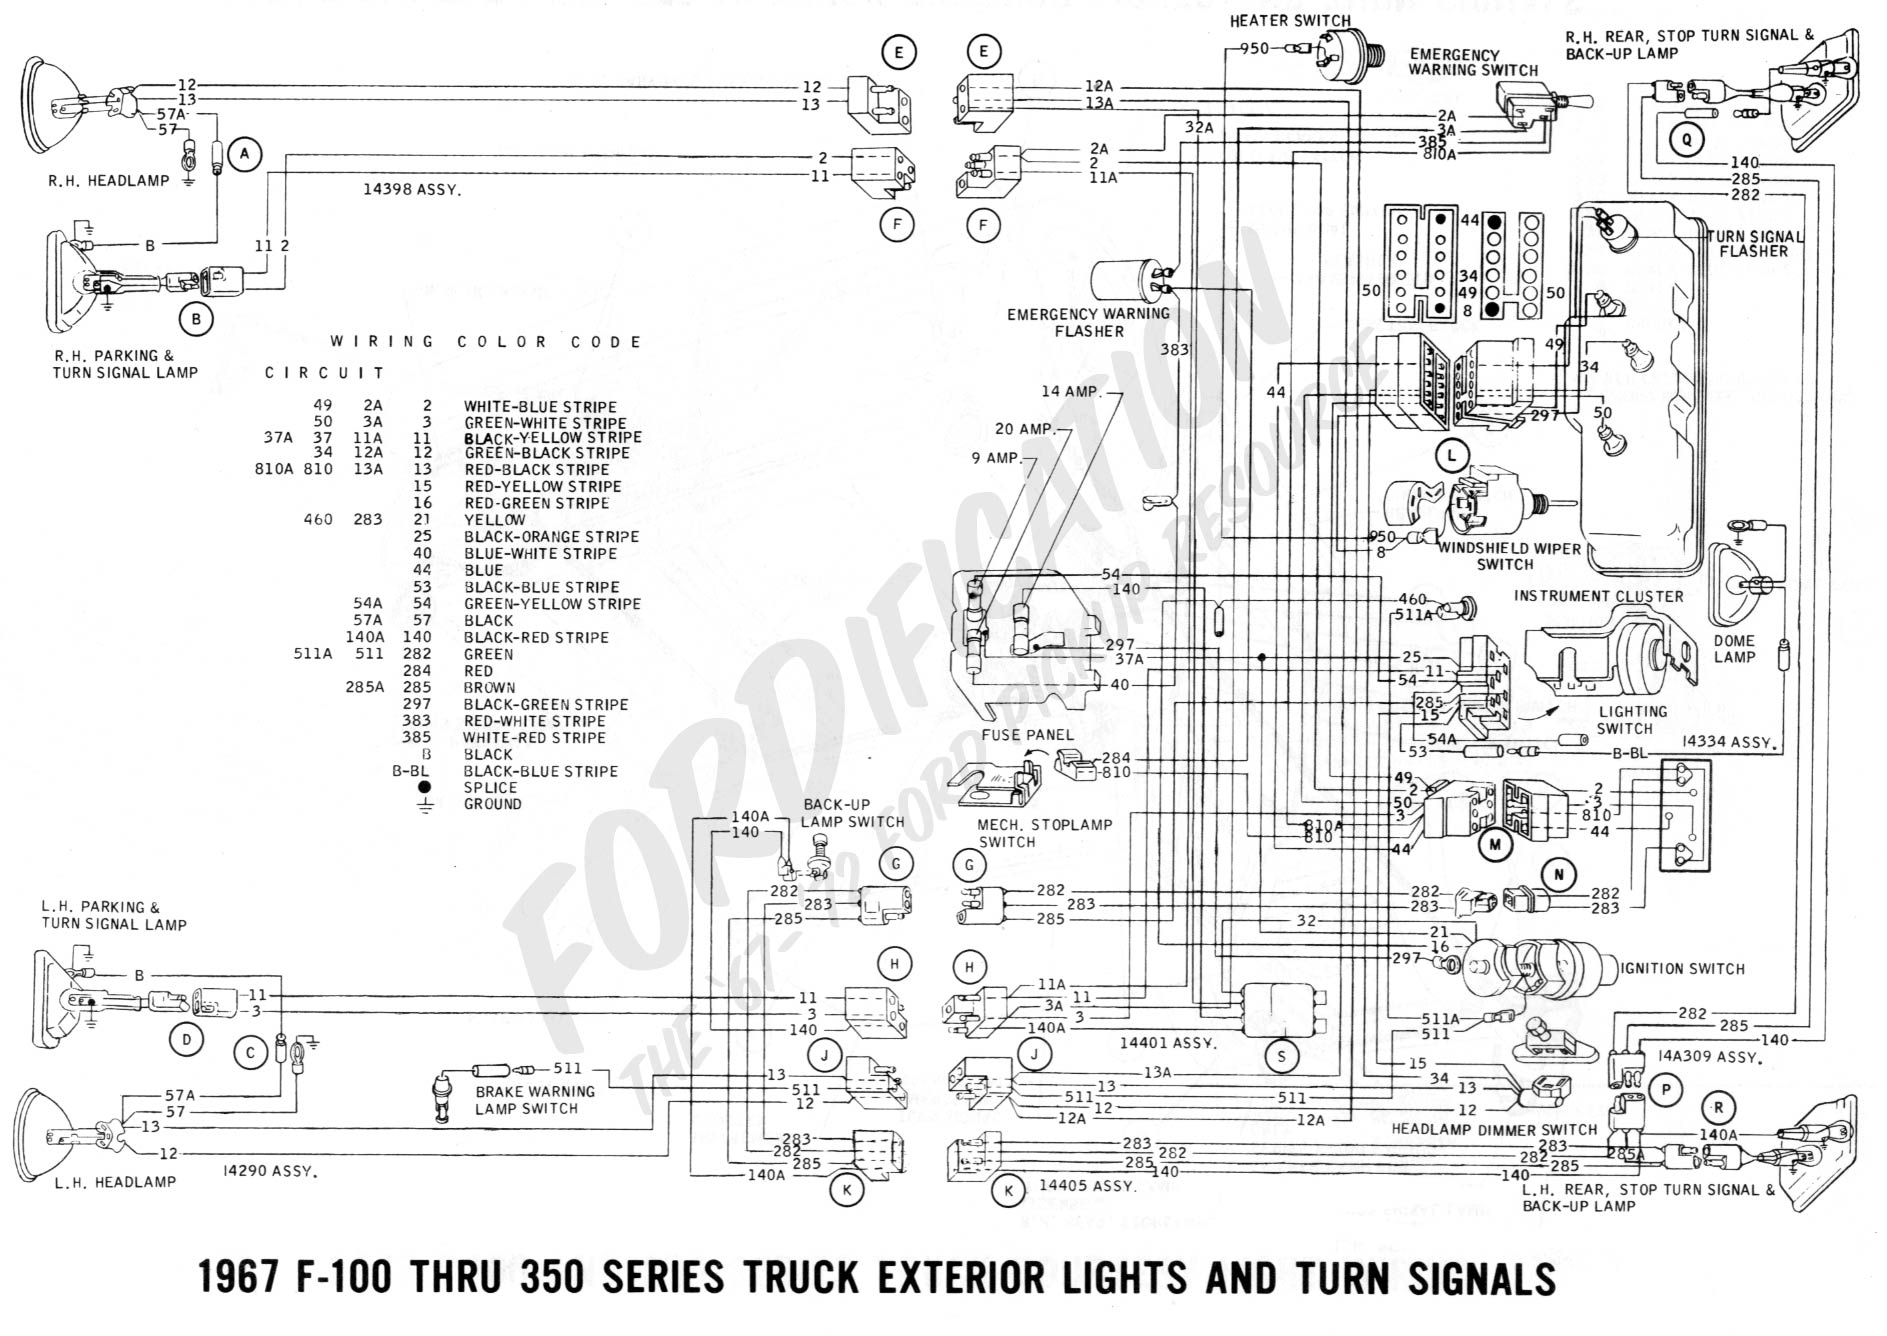 2004 f650 wiring diagram for reverse light